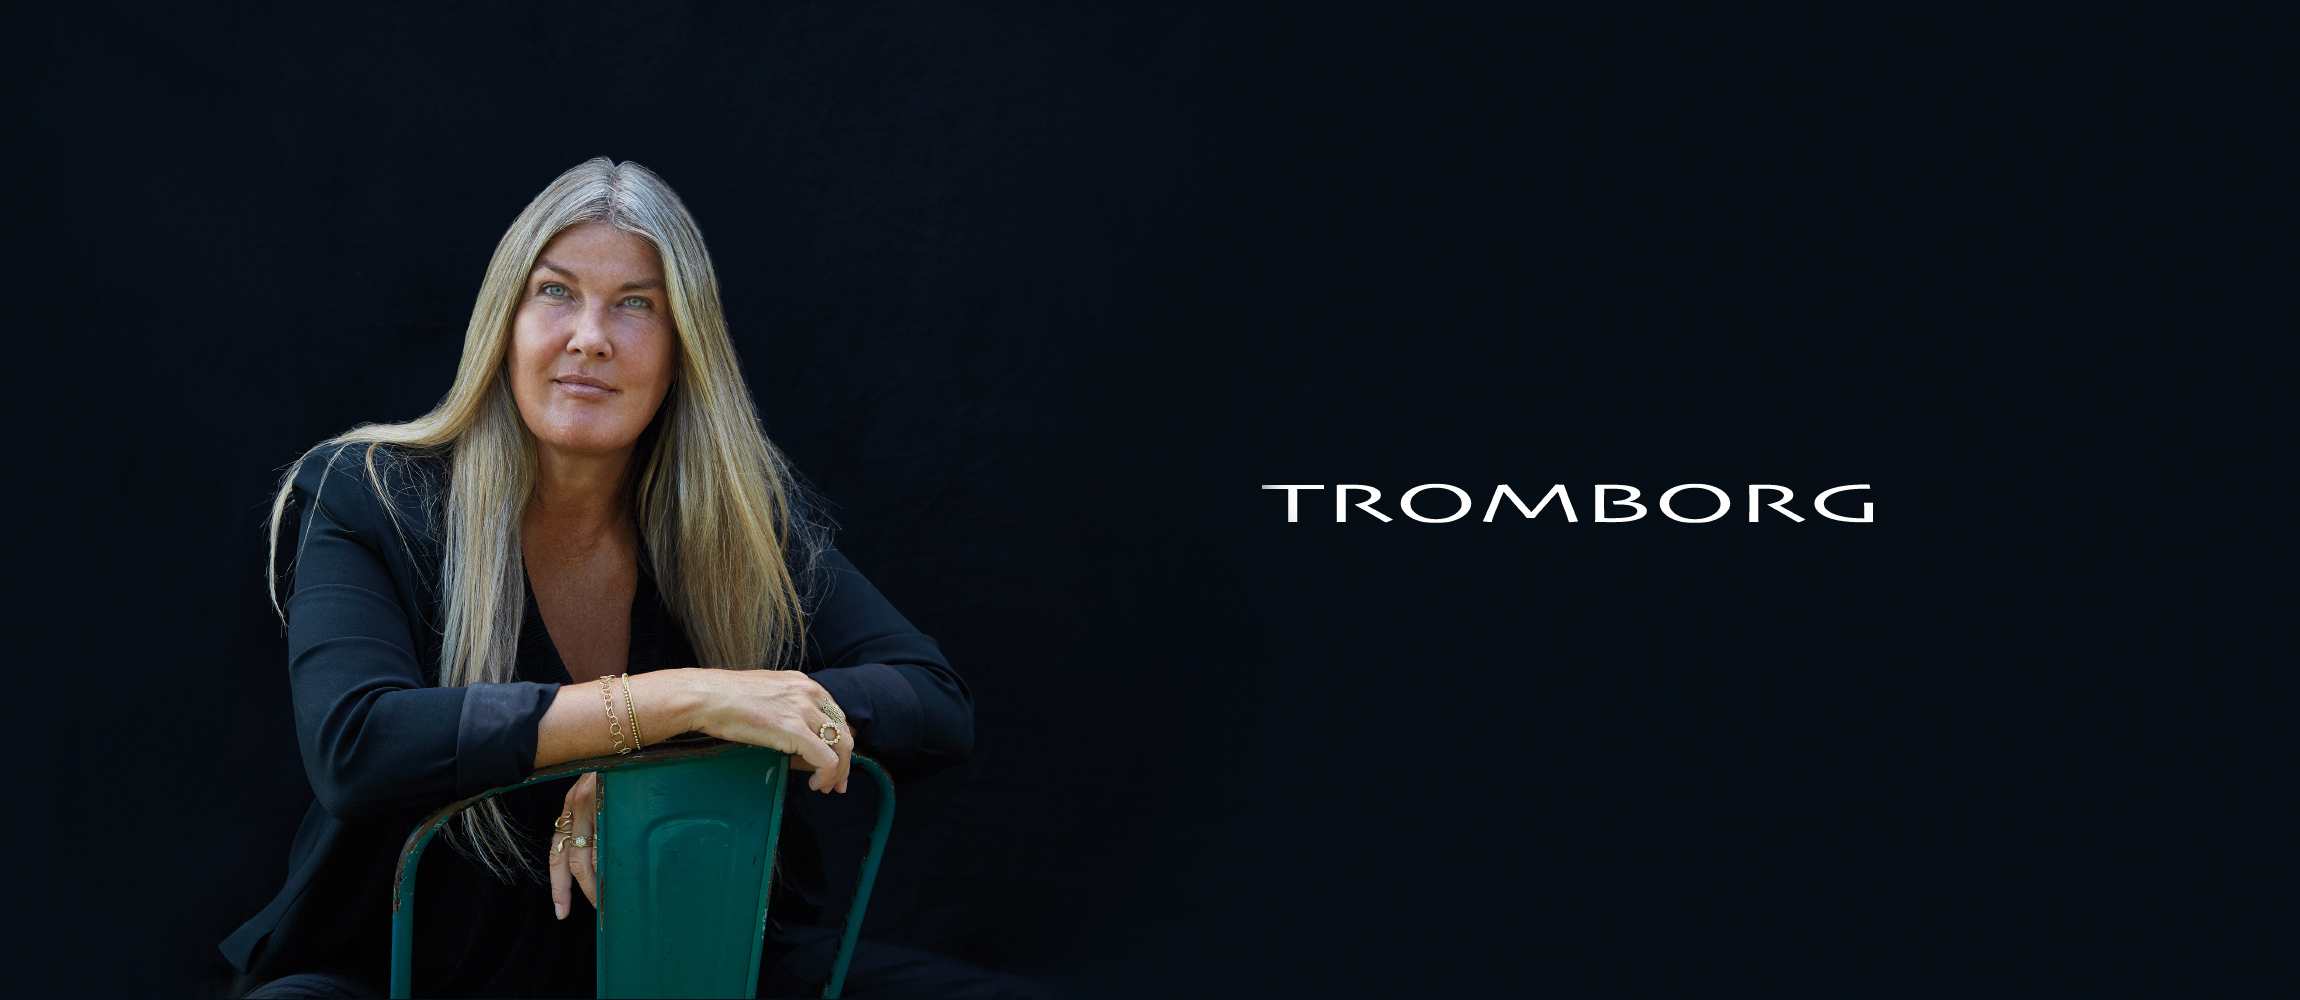 Tromborg, Marianne Tromborg, video guides